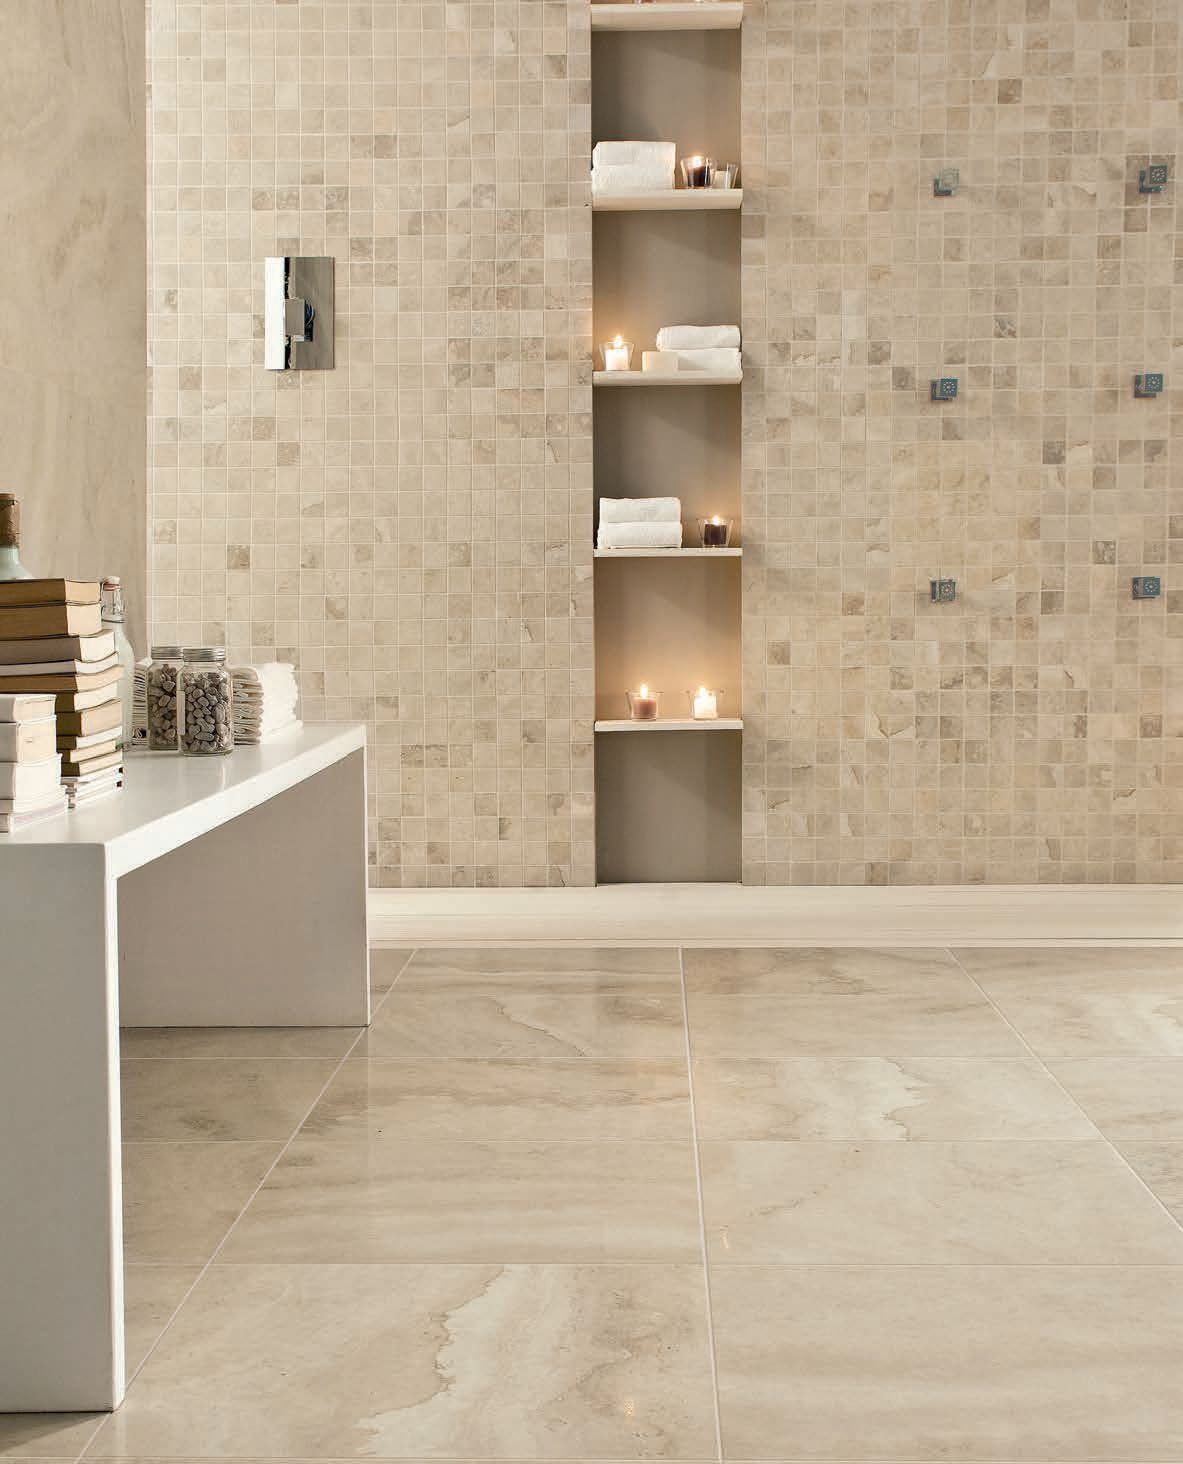 Marble look porcelain tiles the look without the hassle the new marble look porcelain tiles from the caracalla range from italian manufacturer vallelunga dailygadgetfo Images